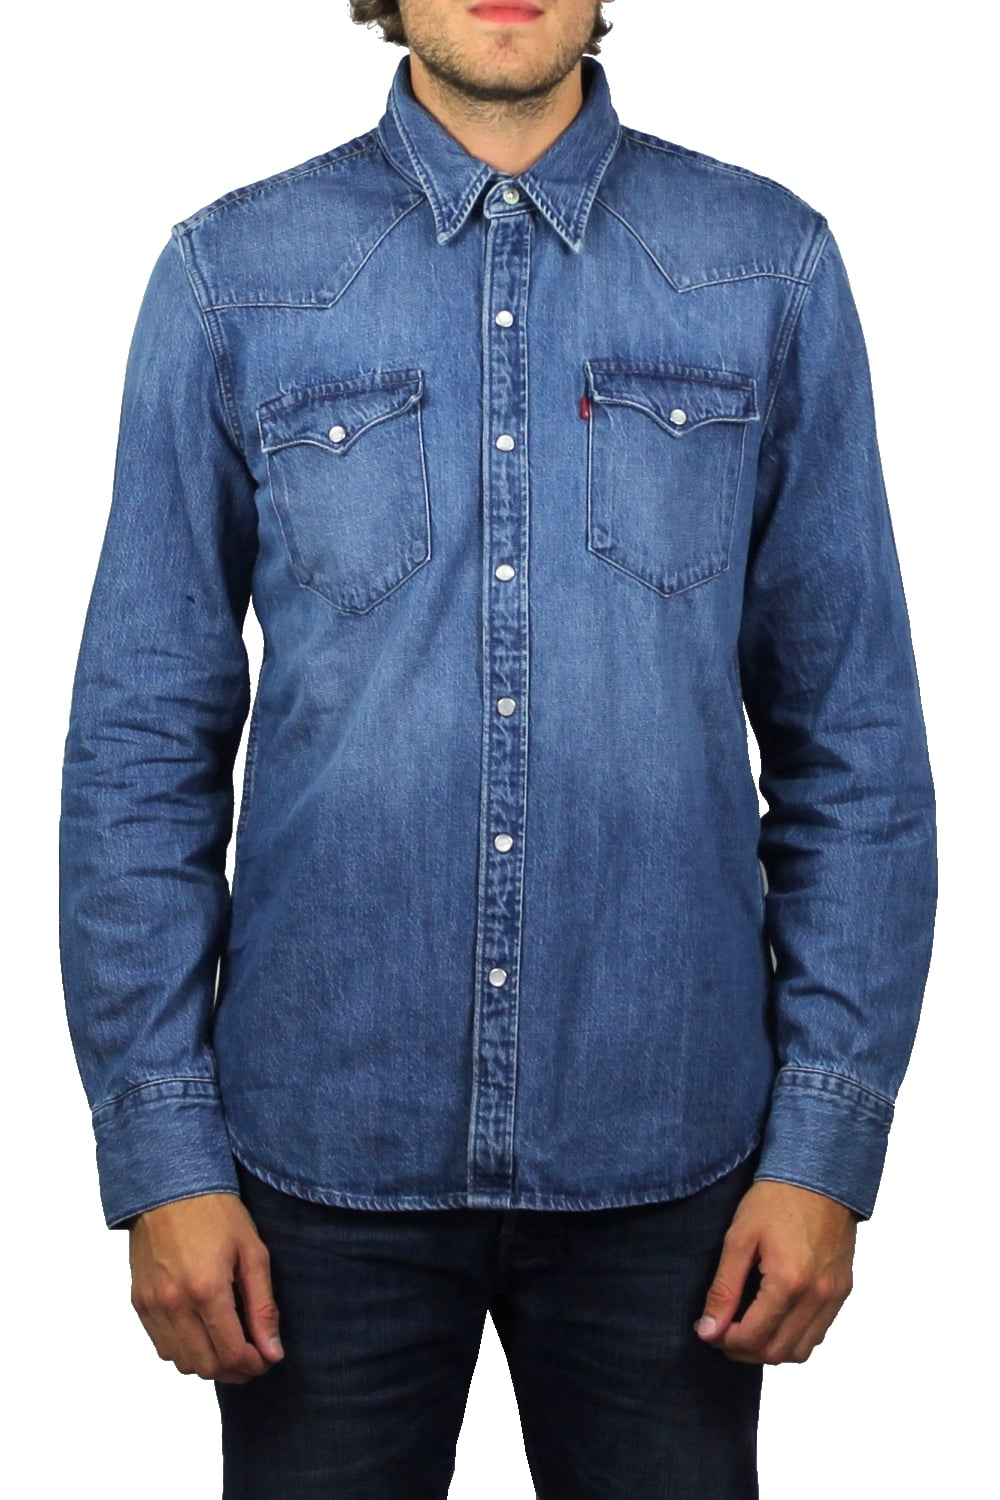 c6ff42cfc0 Barstow Western Denim Long-Sleeved Shirt (Acid Indigo)